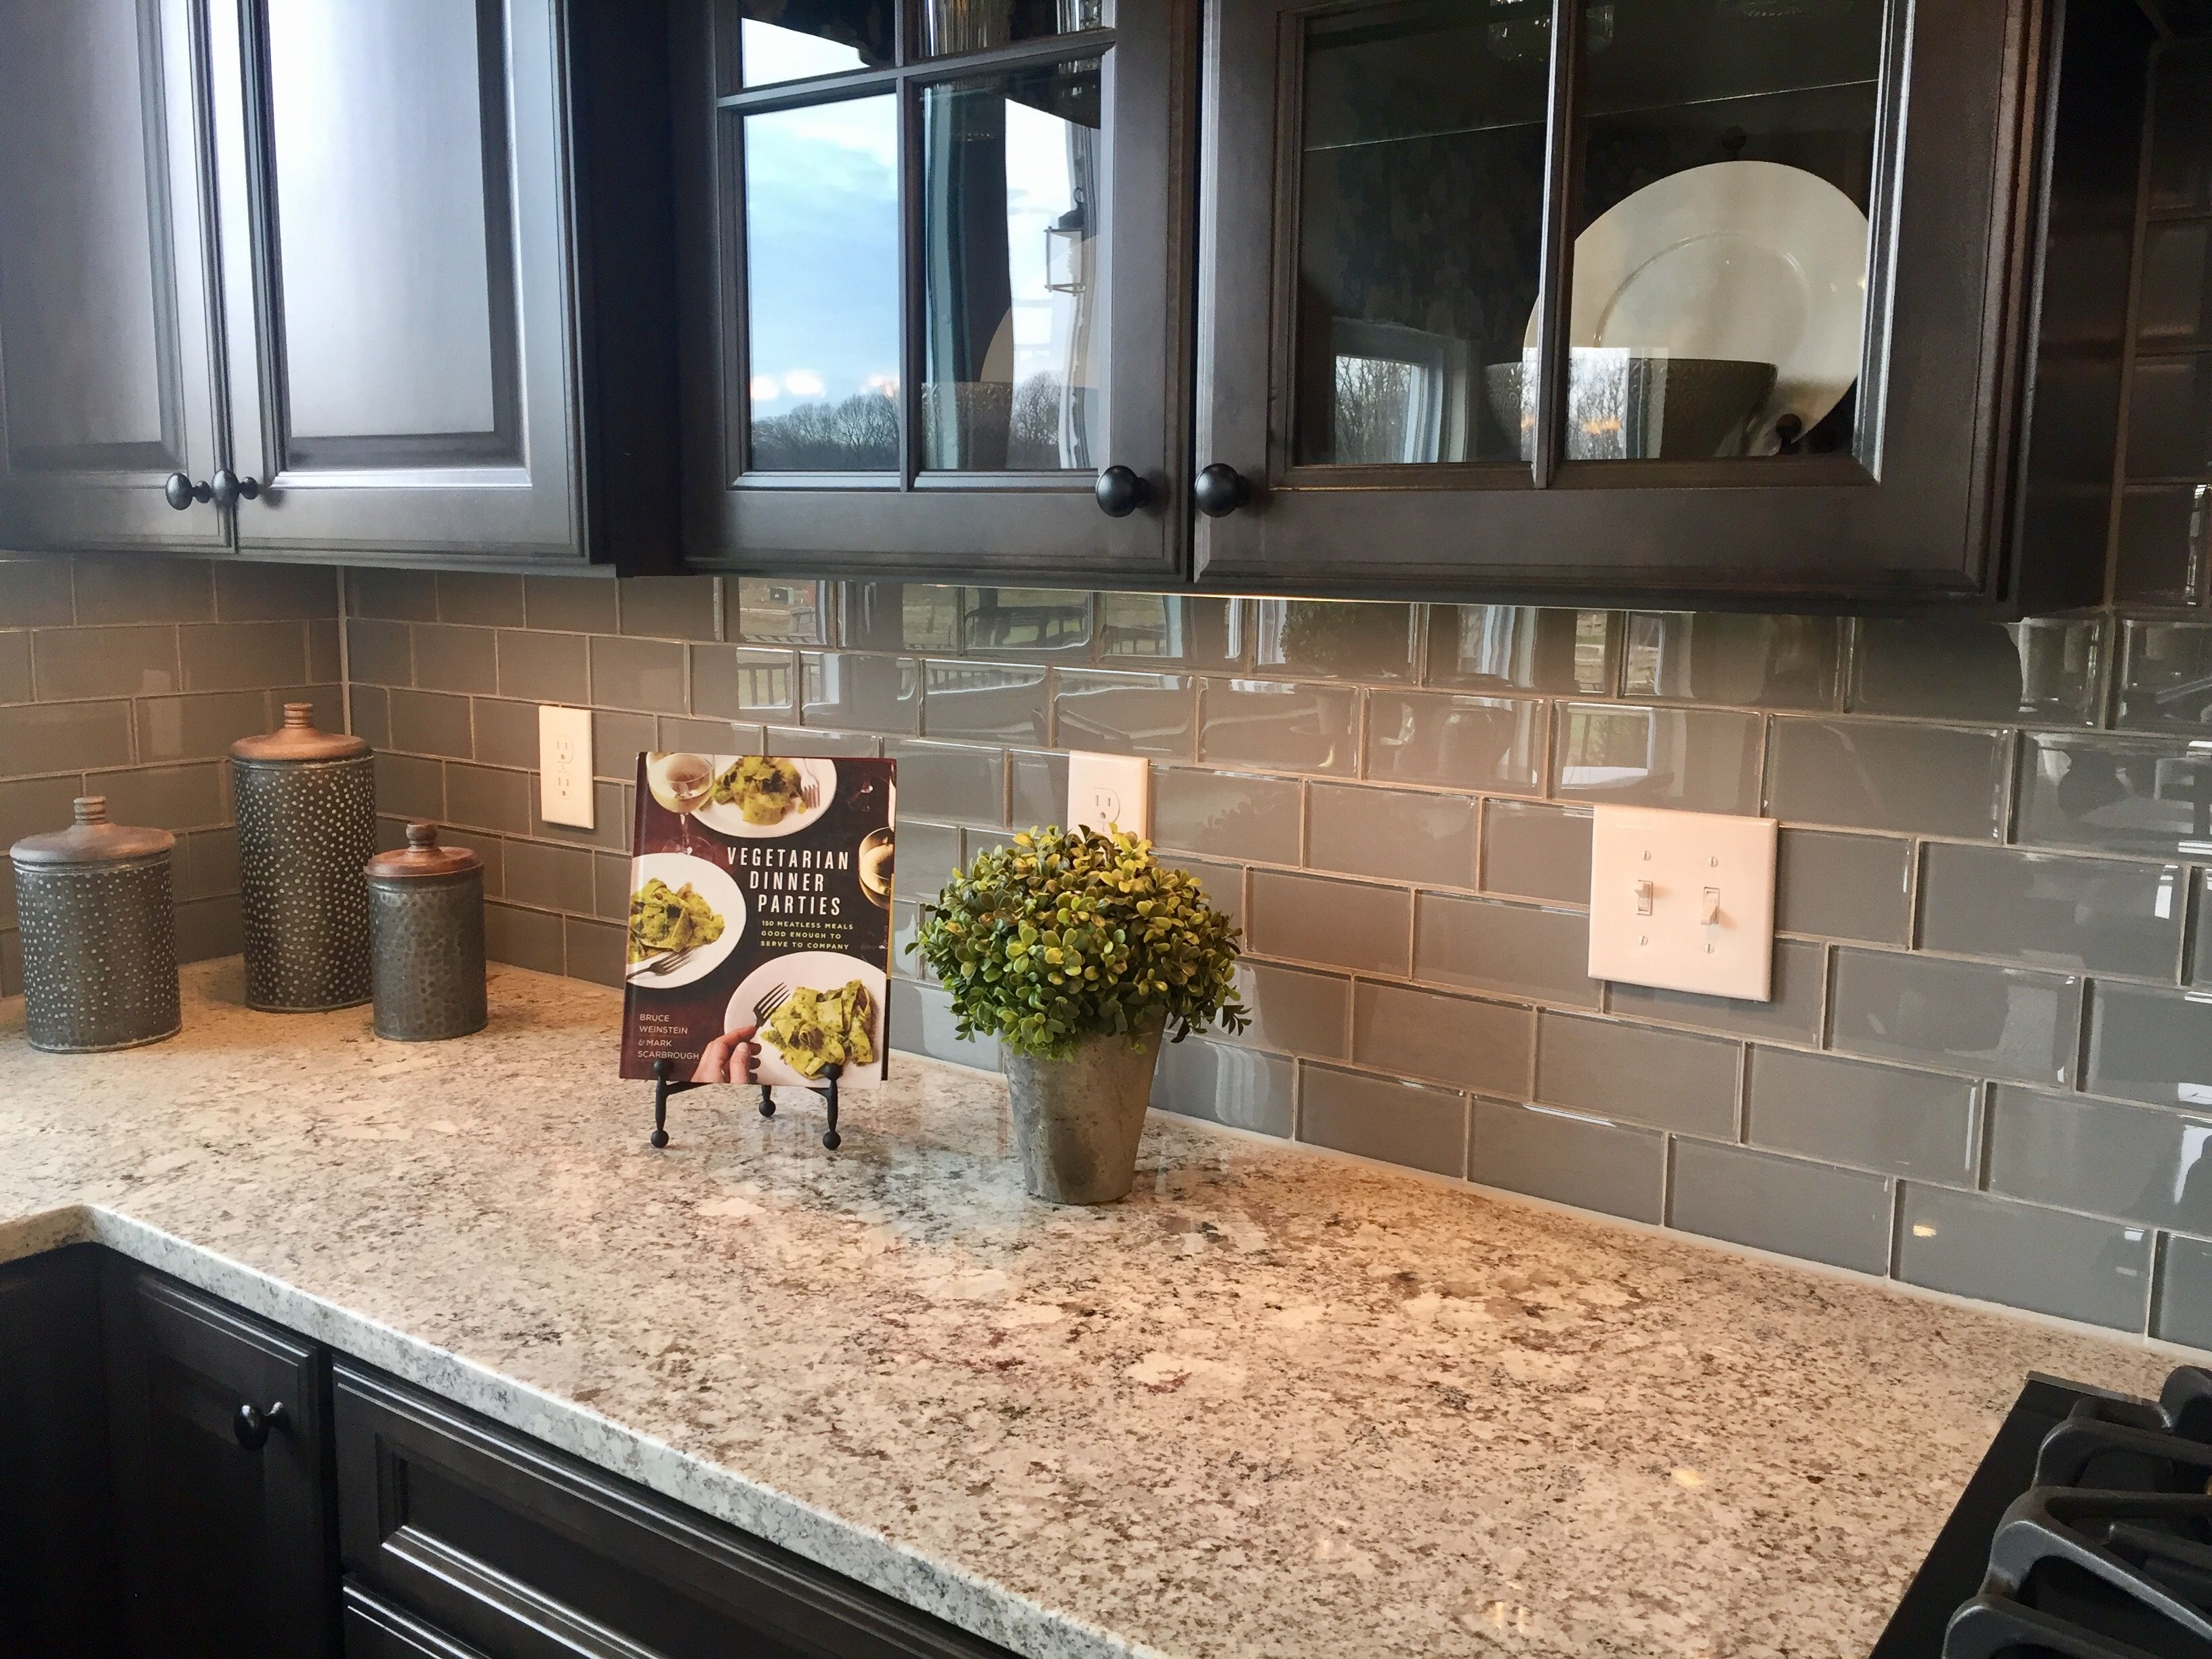 Daltile opulence mosaic tile in diamond silestone black quartz color wave 3x6 smoked pearl glass tiles in brick joint pattern dailygadgetfo Images